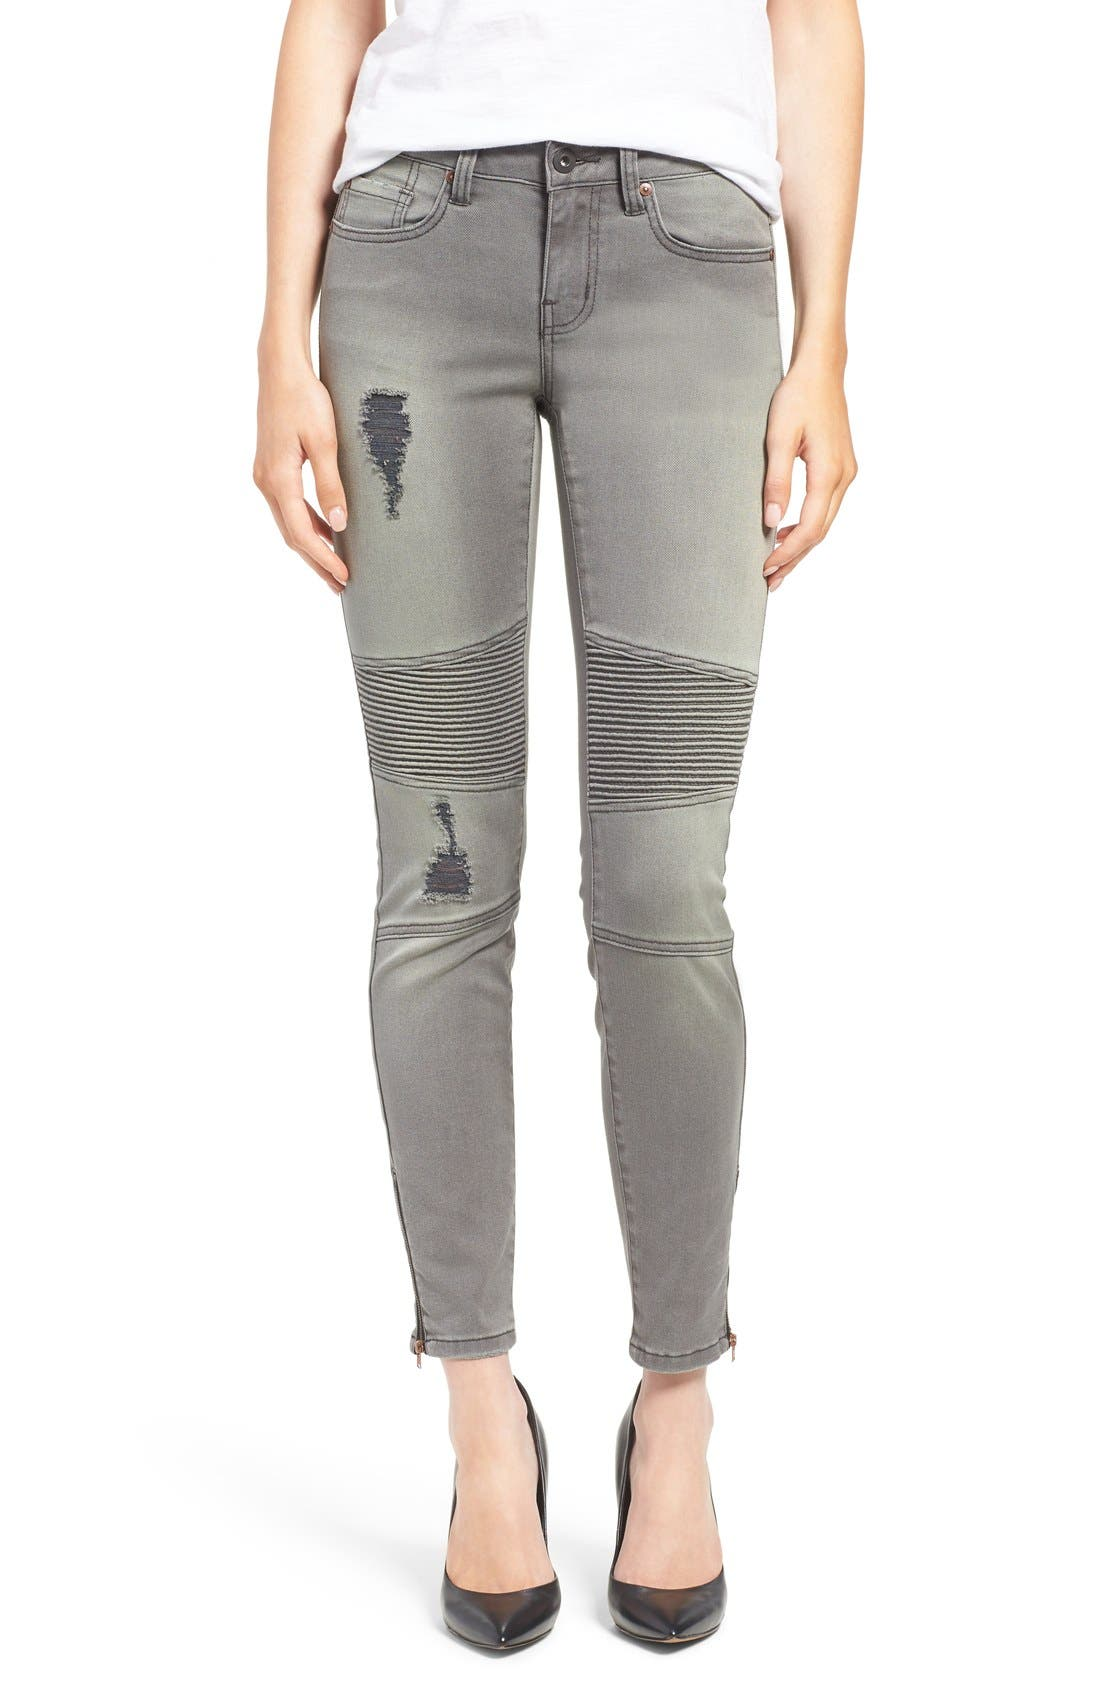 Alternate Image 1 Selected - Dex Distressed Biker Skinny Jeans (Faded Grey)